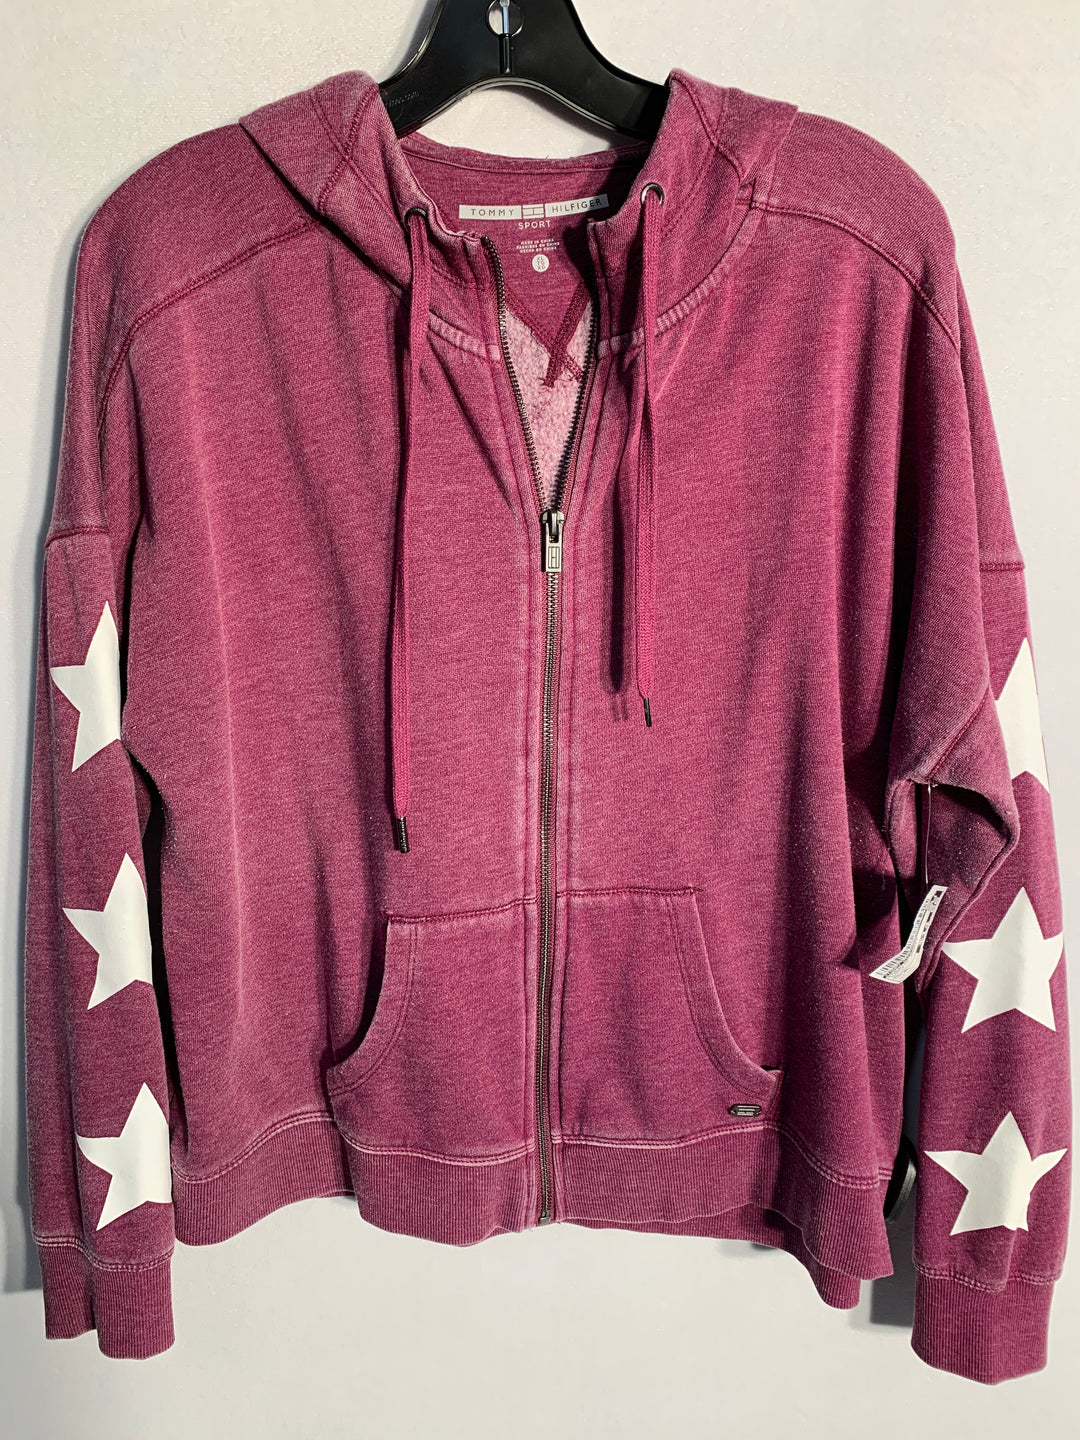 Primary Photo - BRAND: TOMMY HILFIGER<BR>STYLE: ATHLETIC JACKET<BR>COLOR: PURPLE<BR>SIZE: XL<BR>SKU: 313-31328-29426